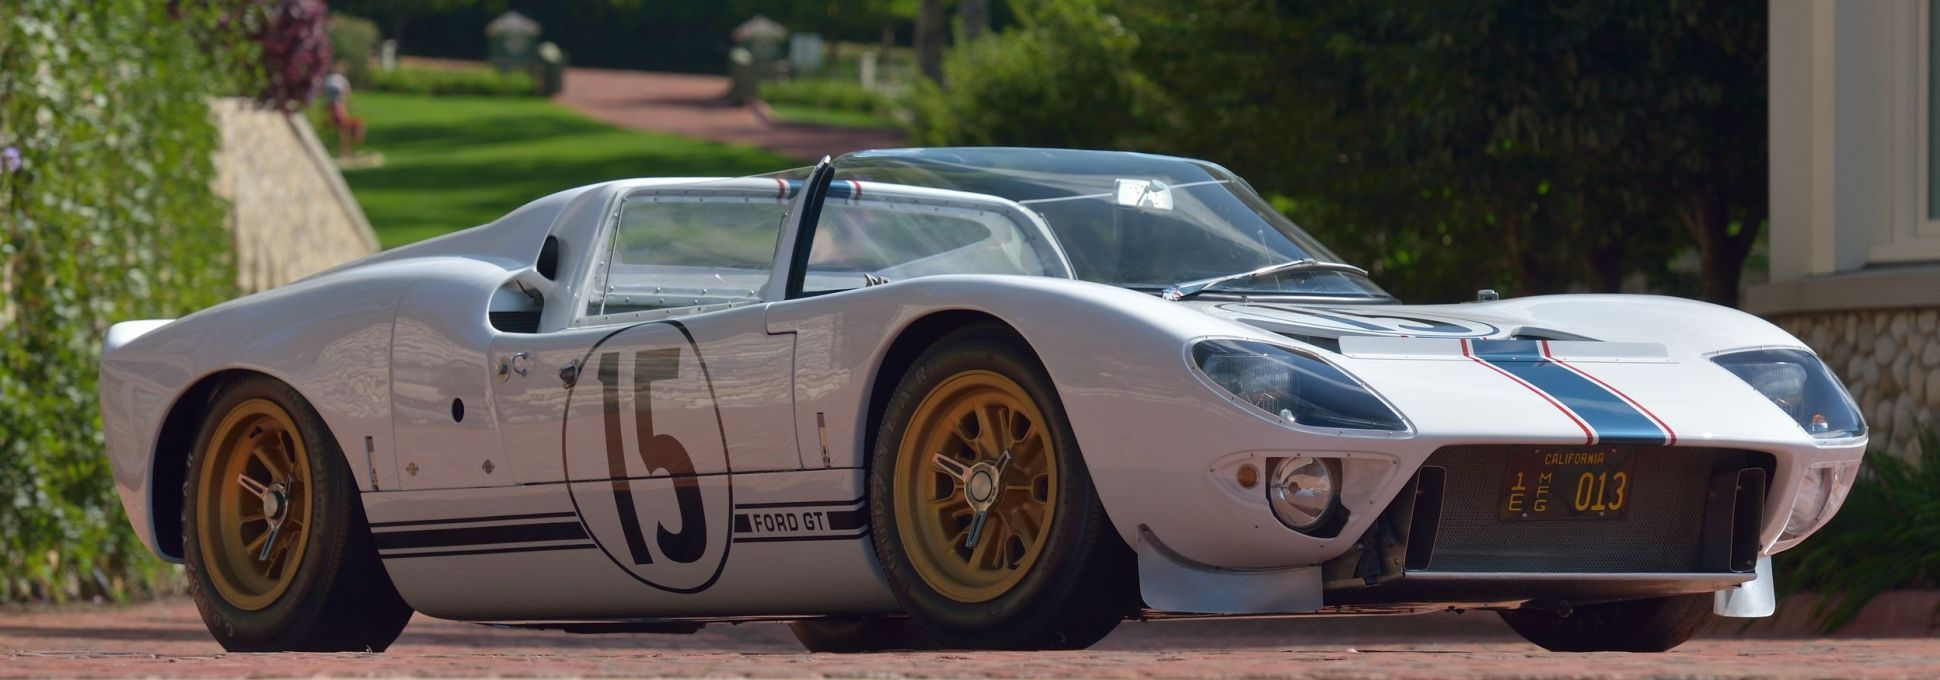 Ford Built Five Gt40 Roadsters But Only One Raced In The Ford